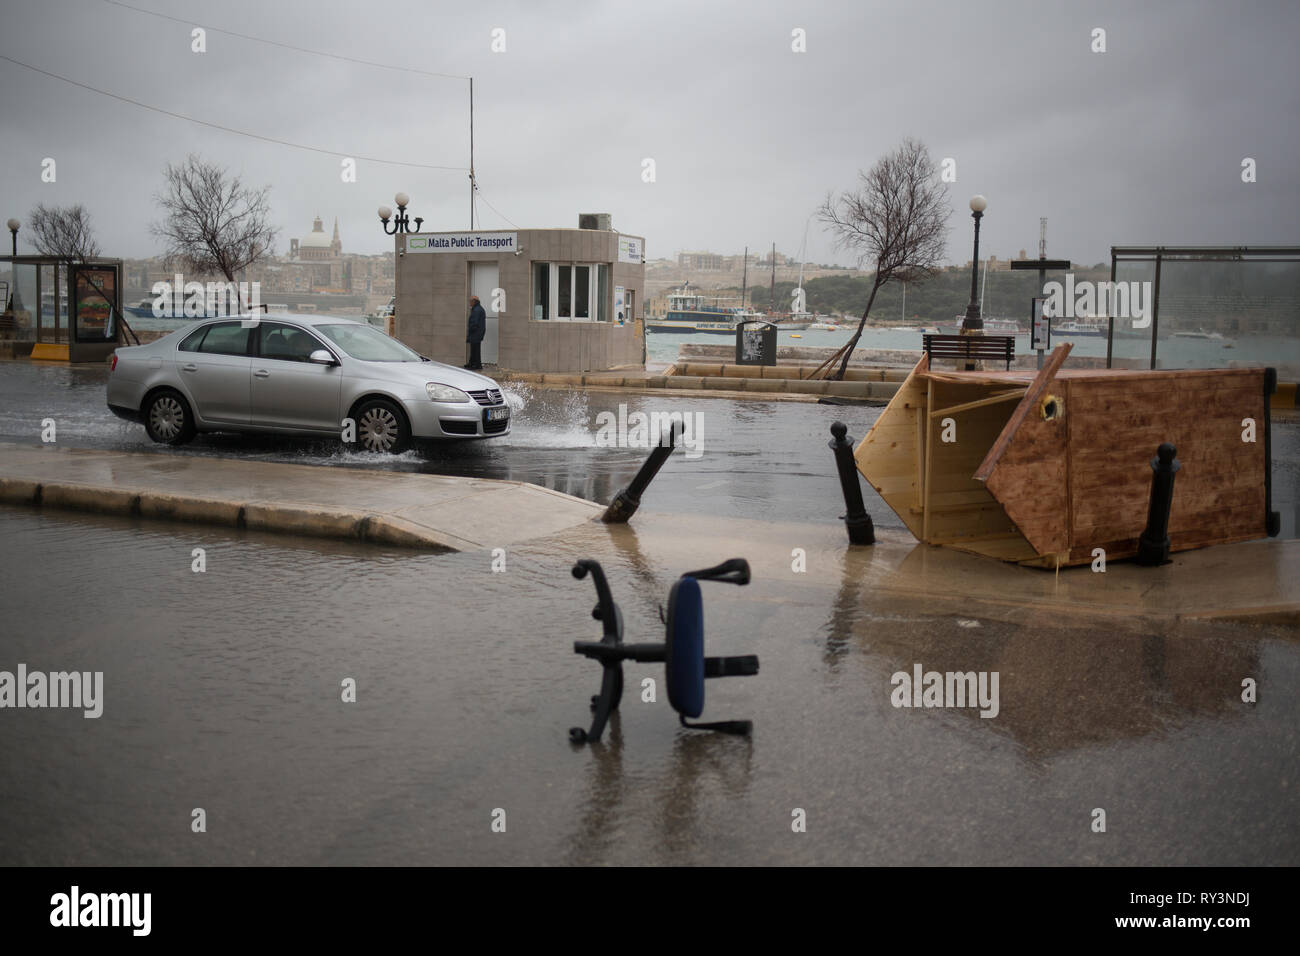 Wild stormy weather and flooding, in Sliema, Malta, 24 February 2019. - Stock Image